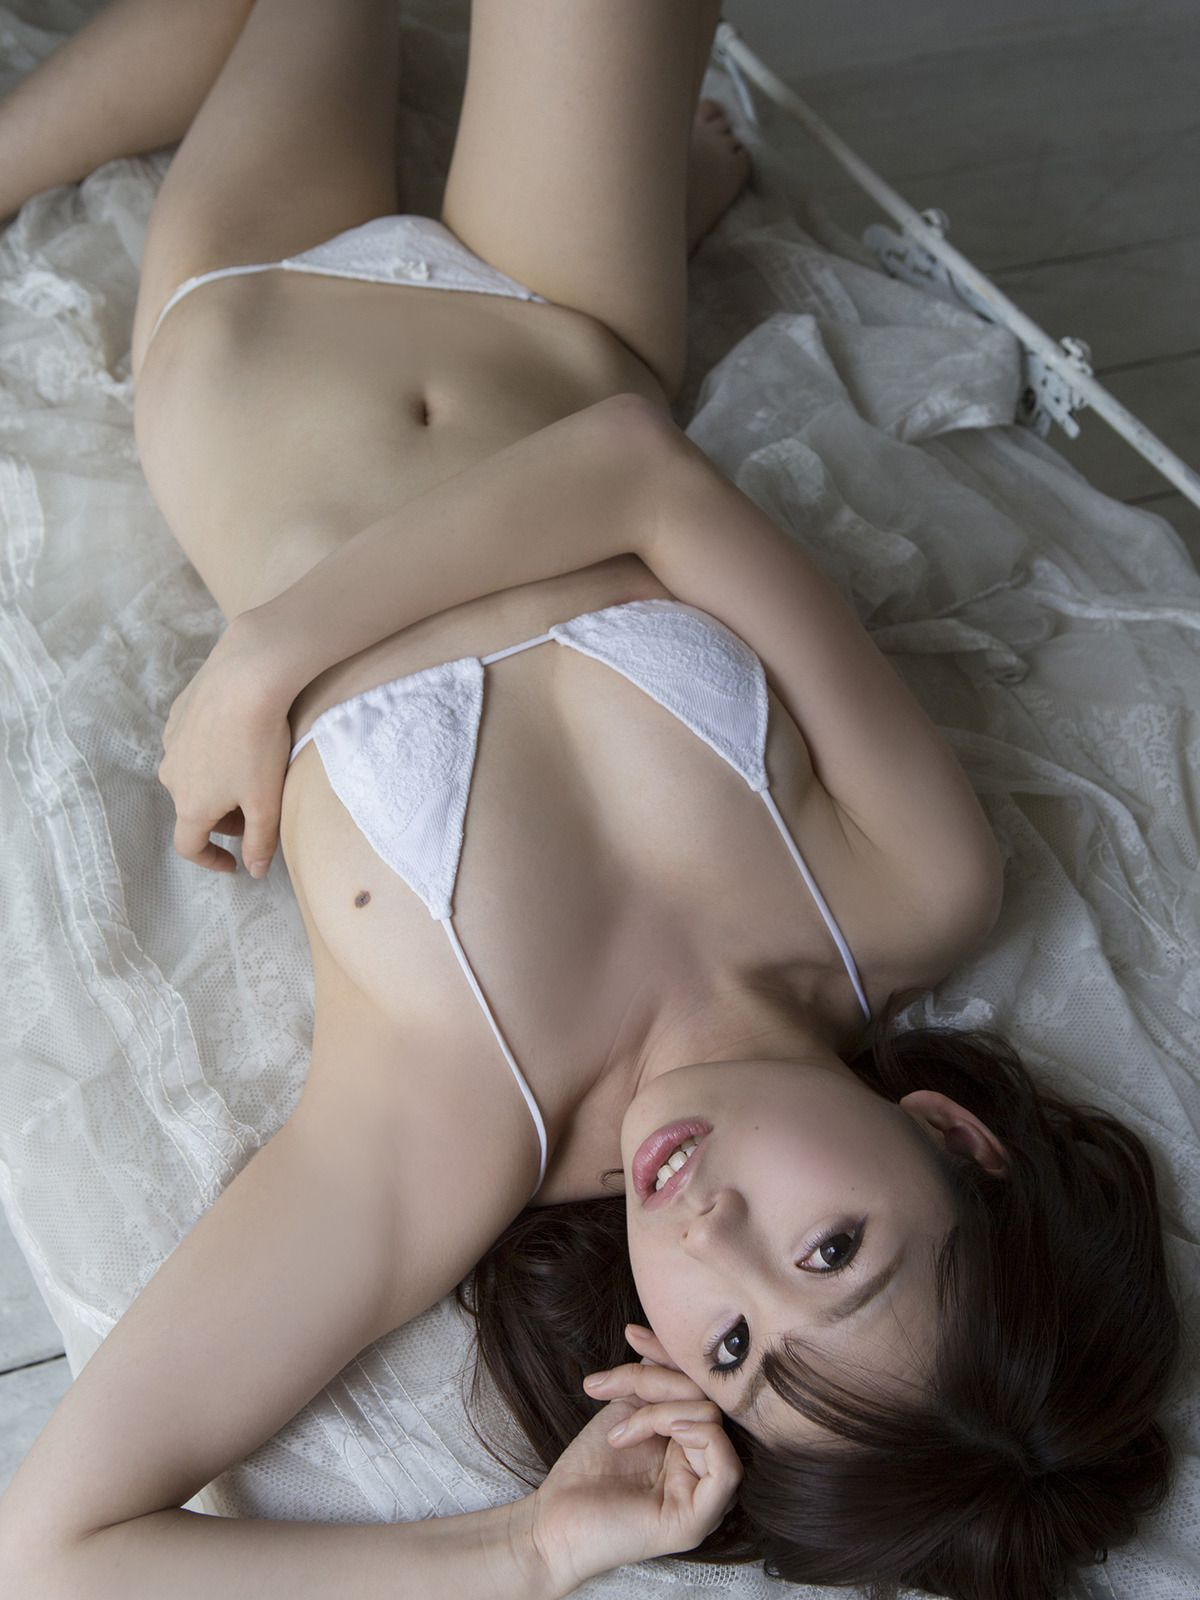 Mai Tsukamoto is naturally energized by the ample G breast019